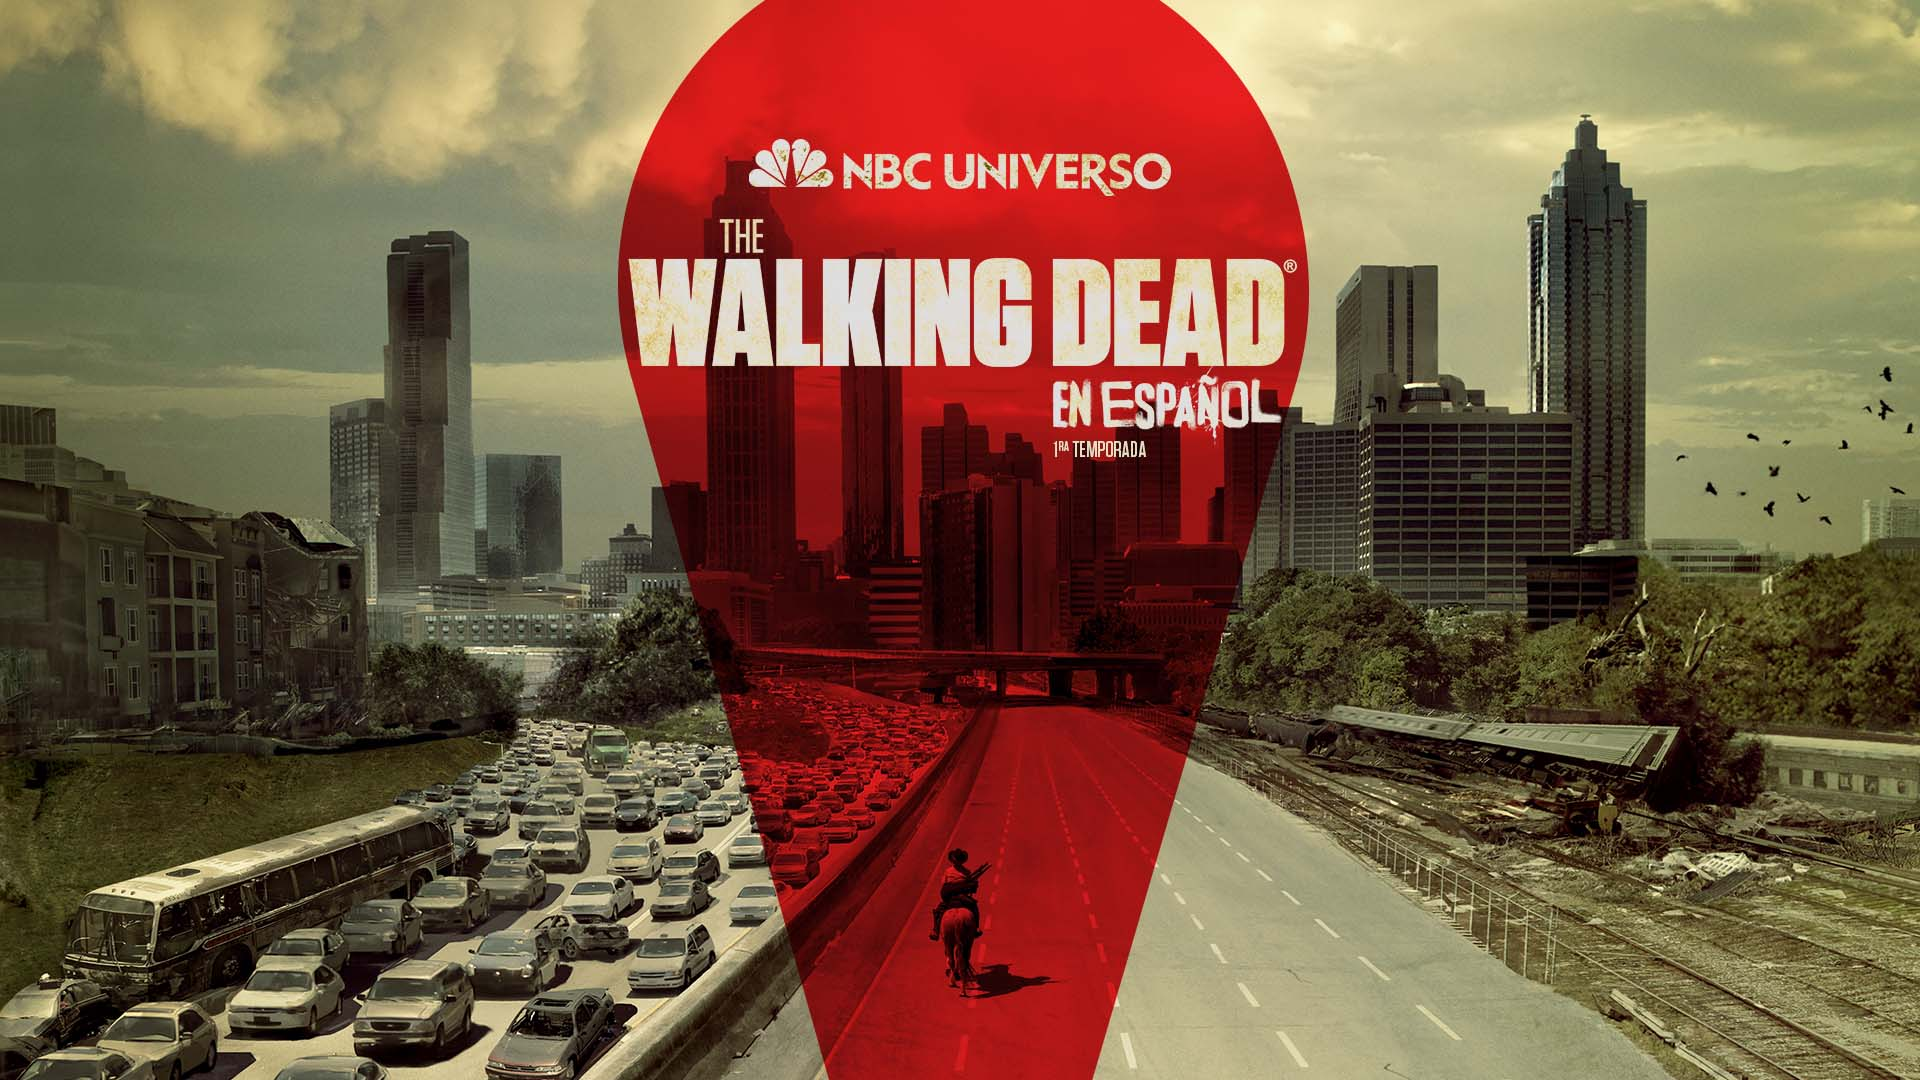 """NBC UNIVERSO premieres the Spanish-language debut of """"The Walking Dead"""" in the U.S. Wed., Jan. 20 at 10pmET/PT"""